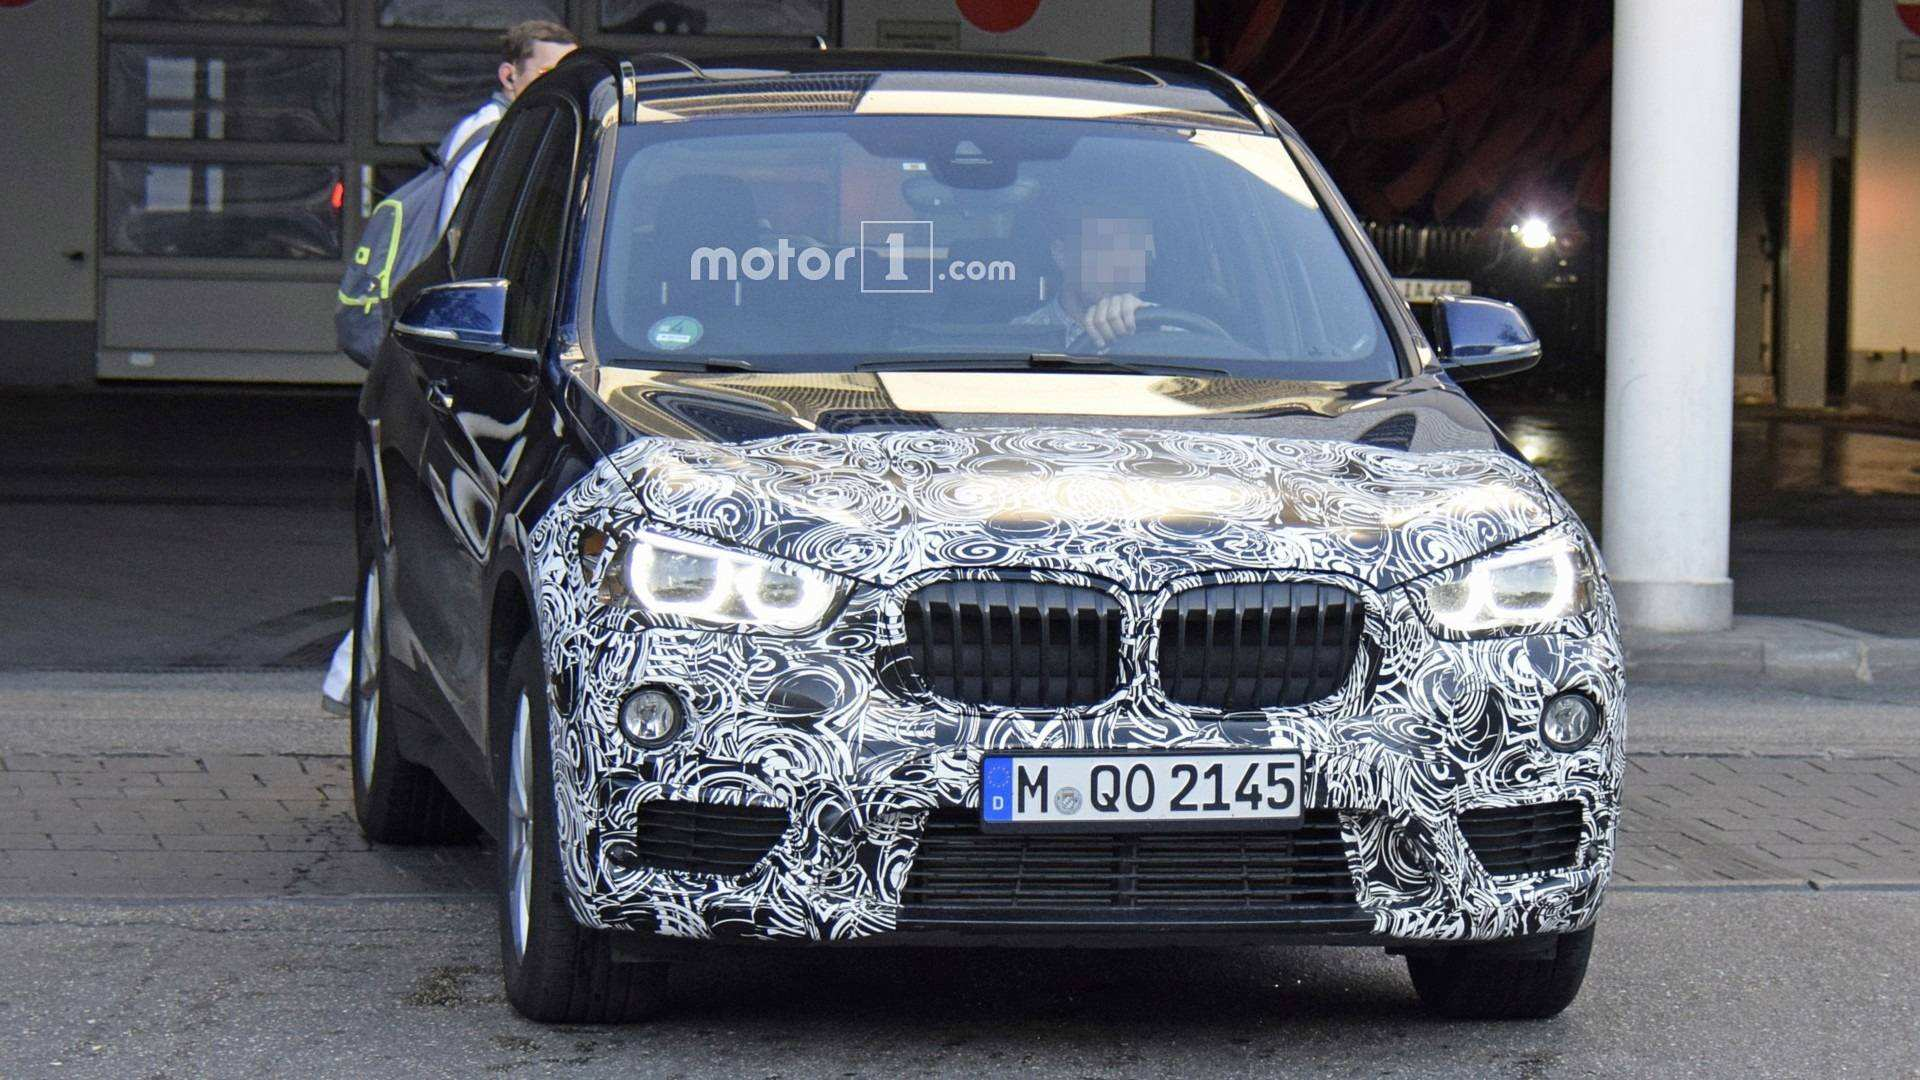 13 All New Bmw X1 2020 Facelift Research New with Bmw X1 2020 Facelift